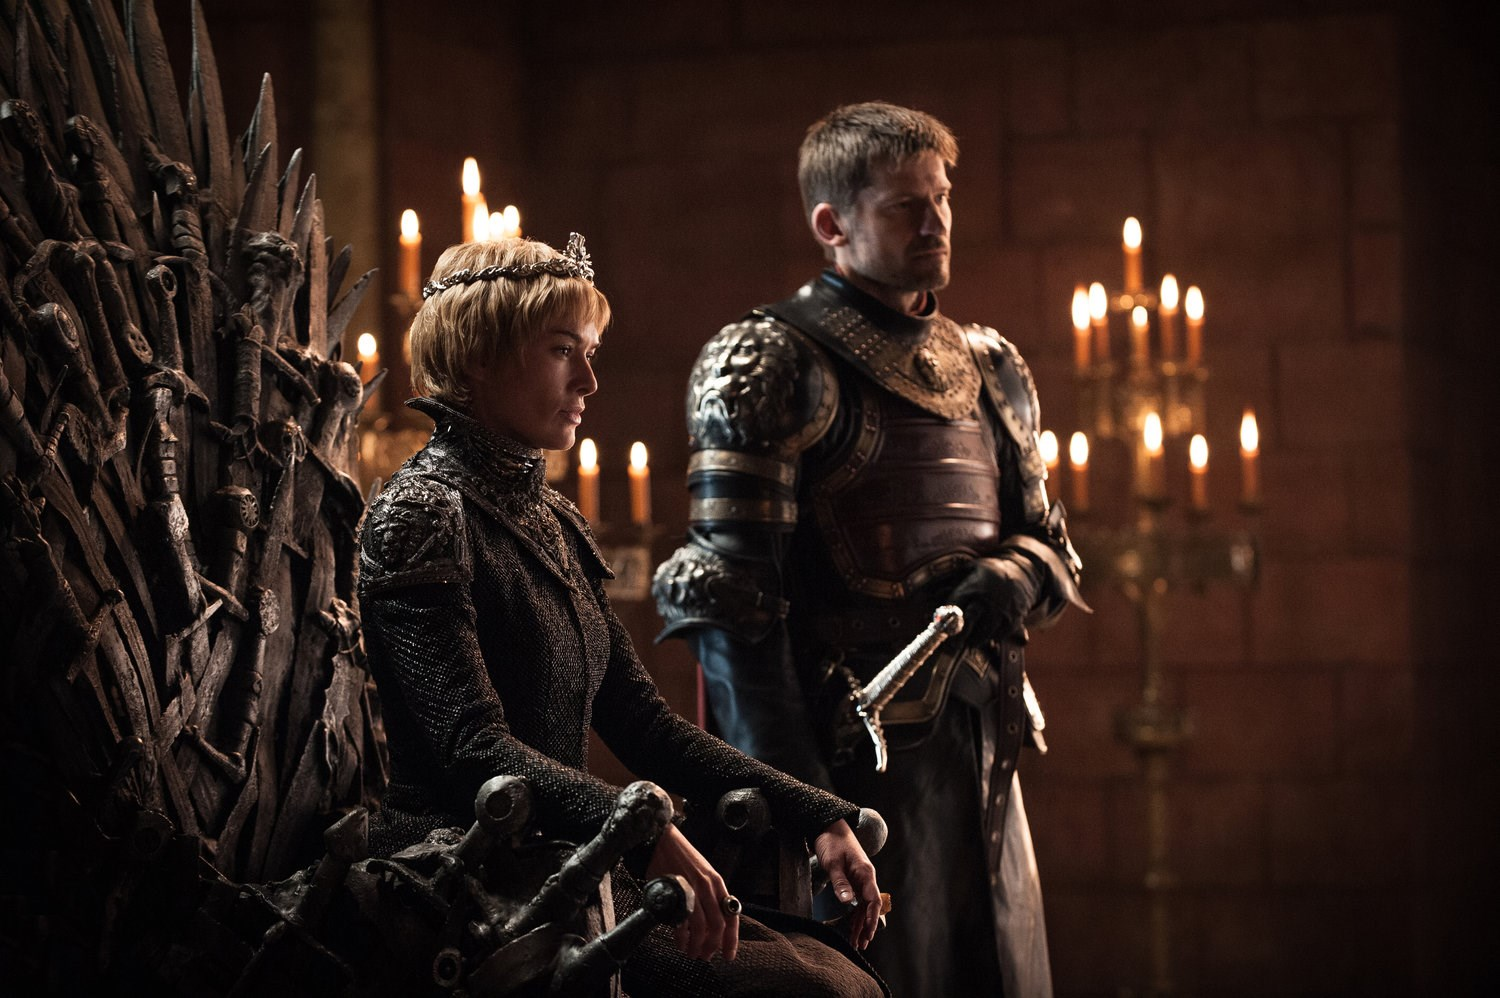 """<p>Queen Cersei Lannister and Jaime Lannister.<p> <em>Image via <a href=""""http://www.makinggameofthrones.com/production-diary/get-look-exclusive-photos-game-of-thrones-season-7"""">HBO</a></em>."""